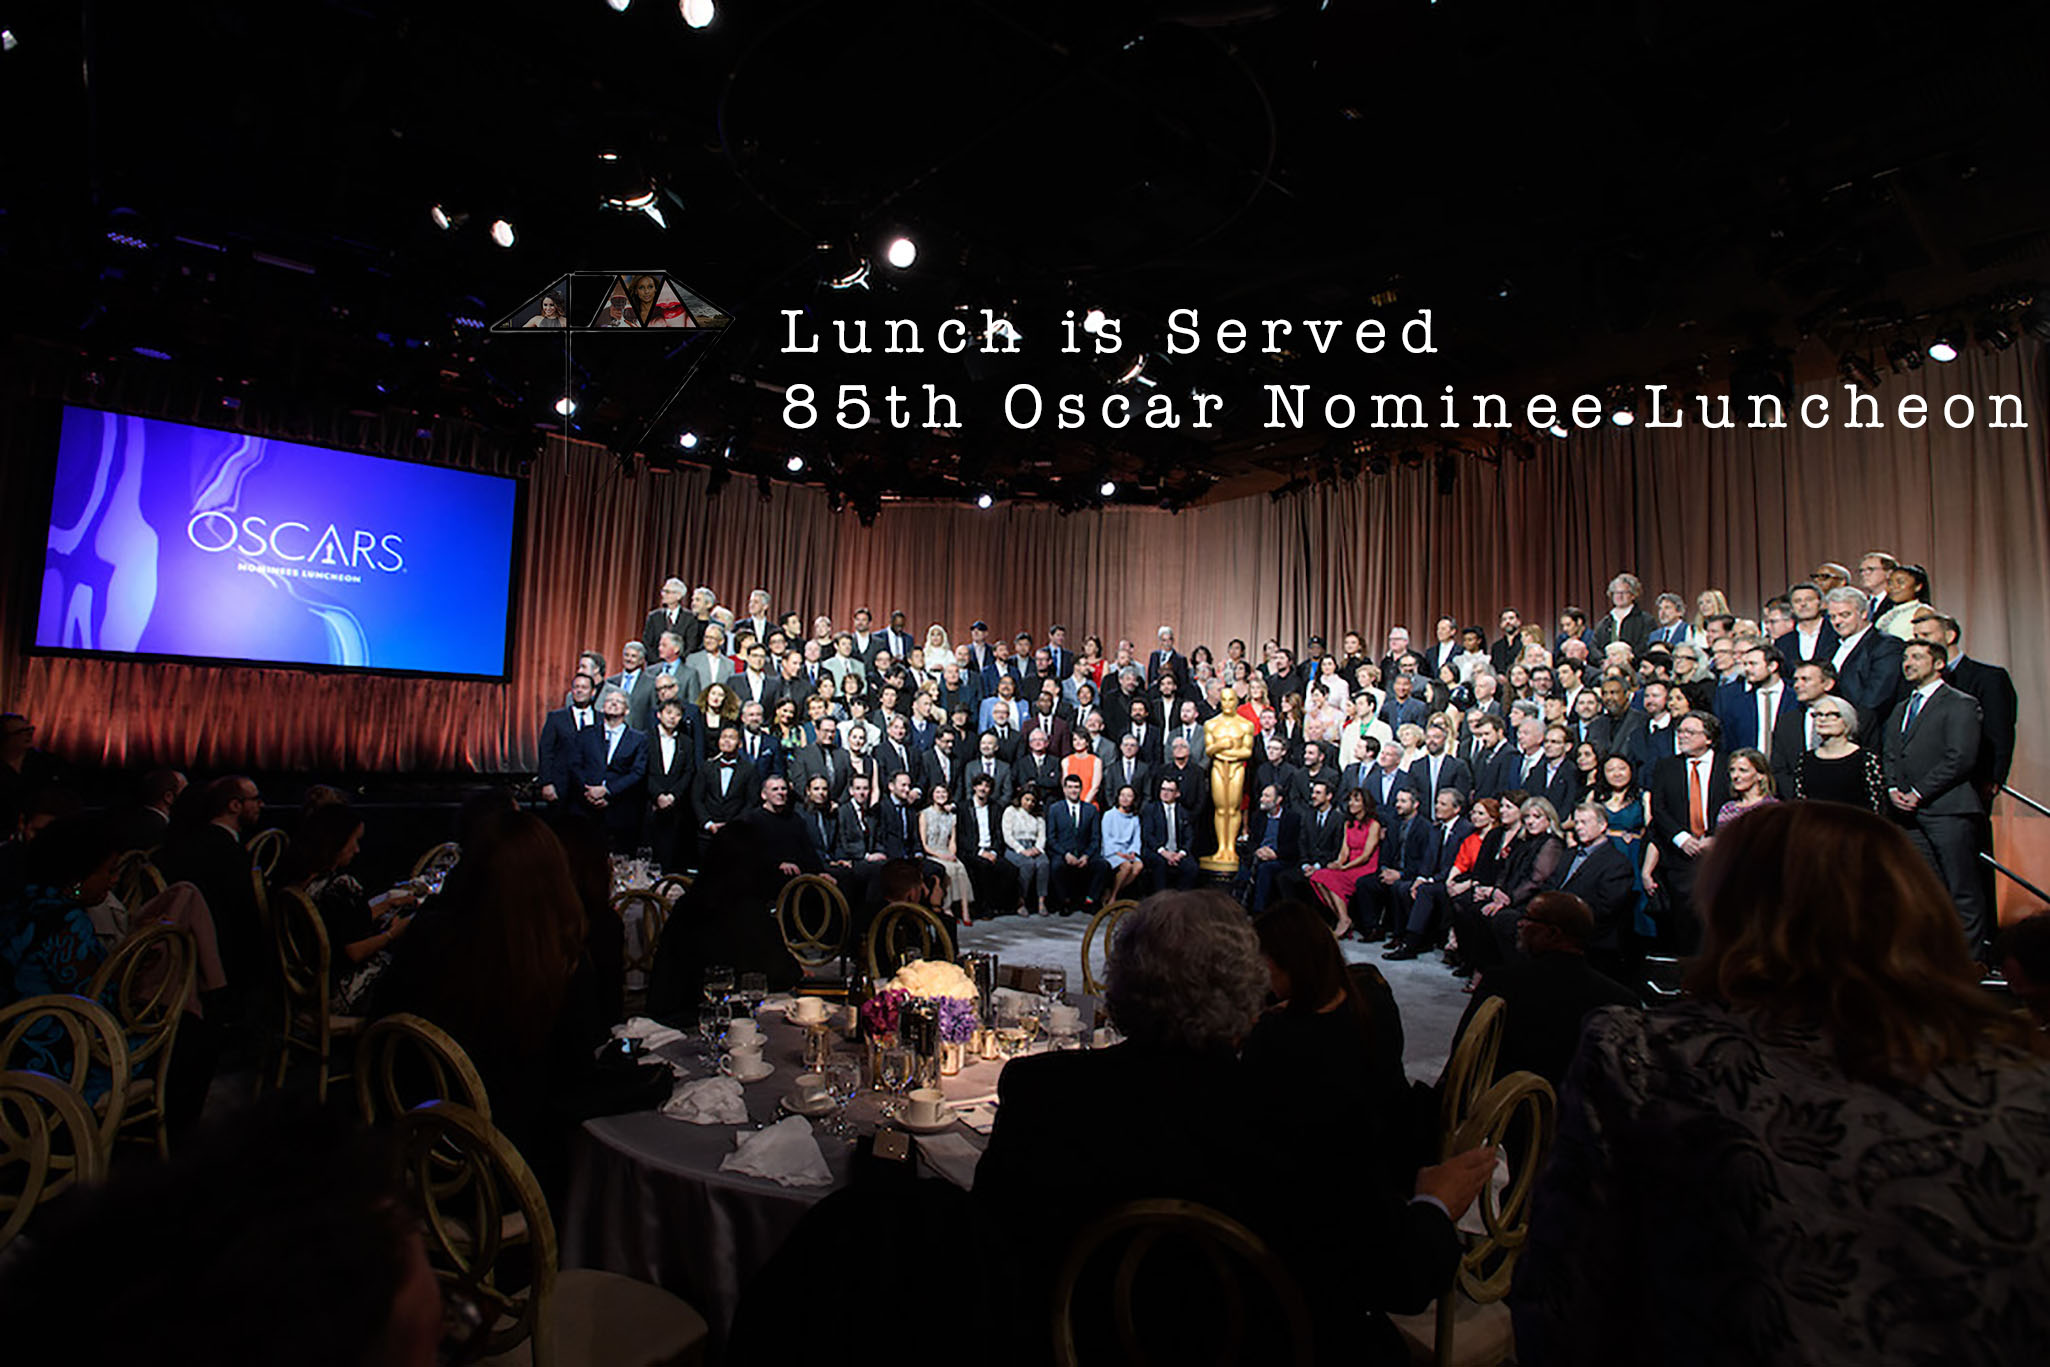 Lunch is Served 85th Oscar Nominee Luncheon - 4Chion Lifestyle